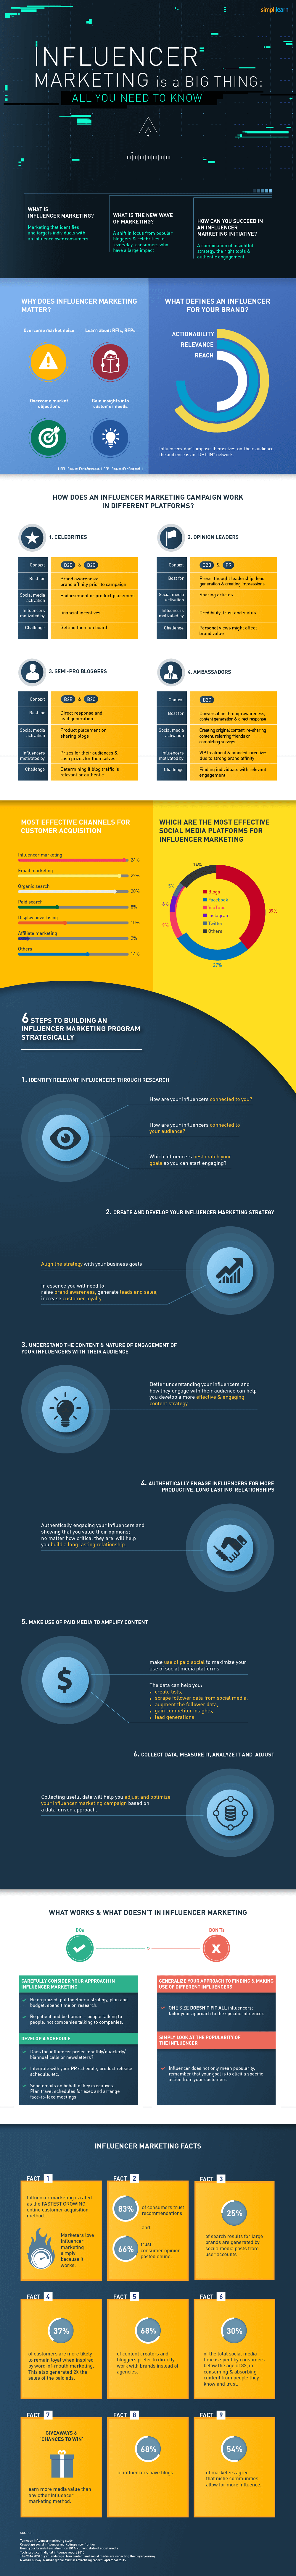 Influencer marketing is a big thing: All you need to know - infographic